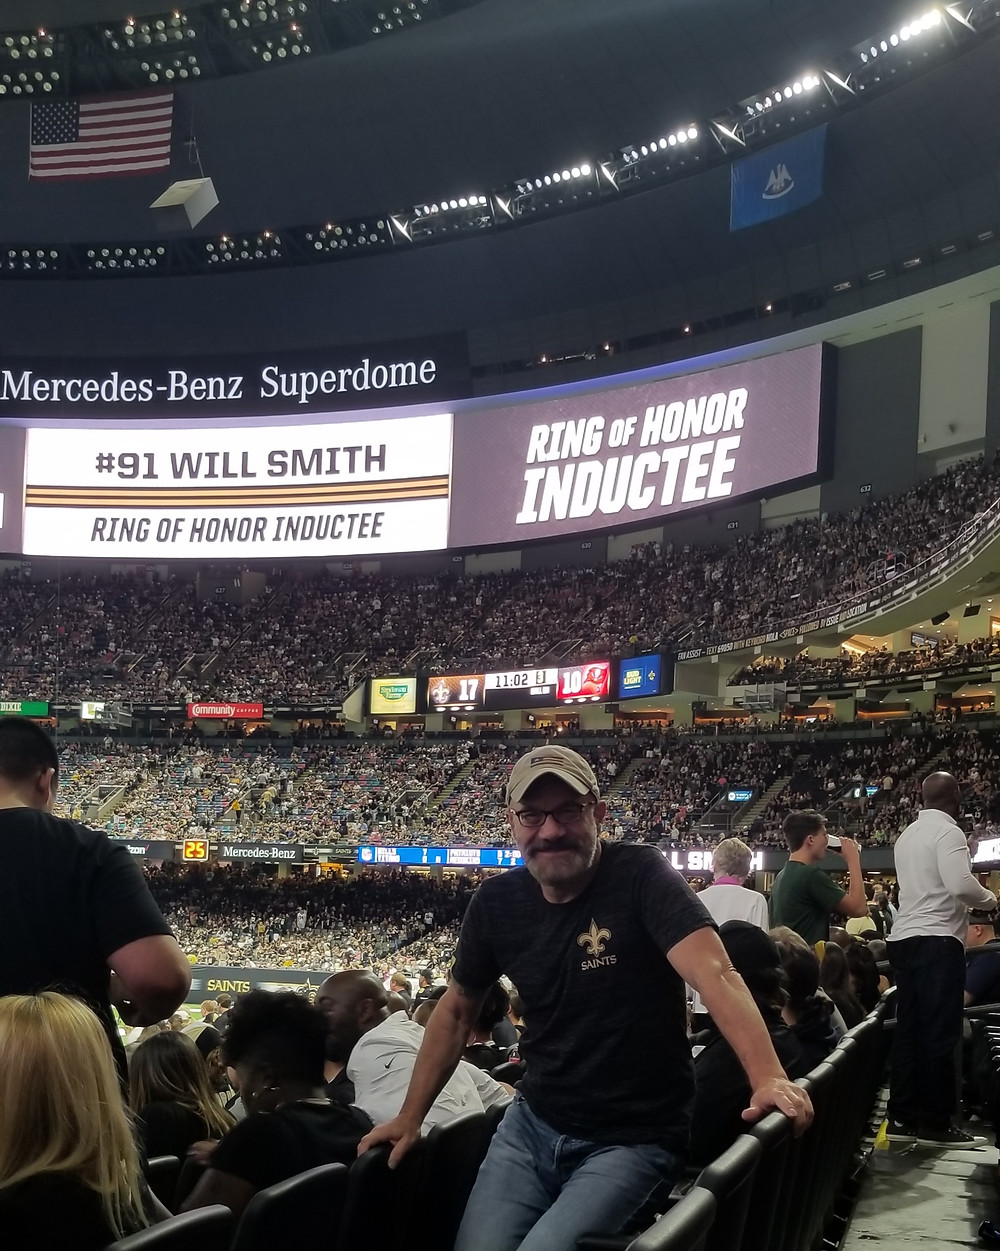 Stadium Review of Mercedes-Benz Superdome